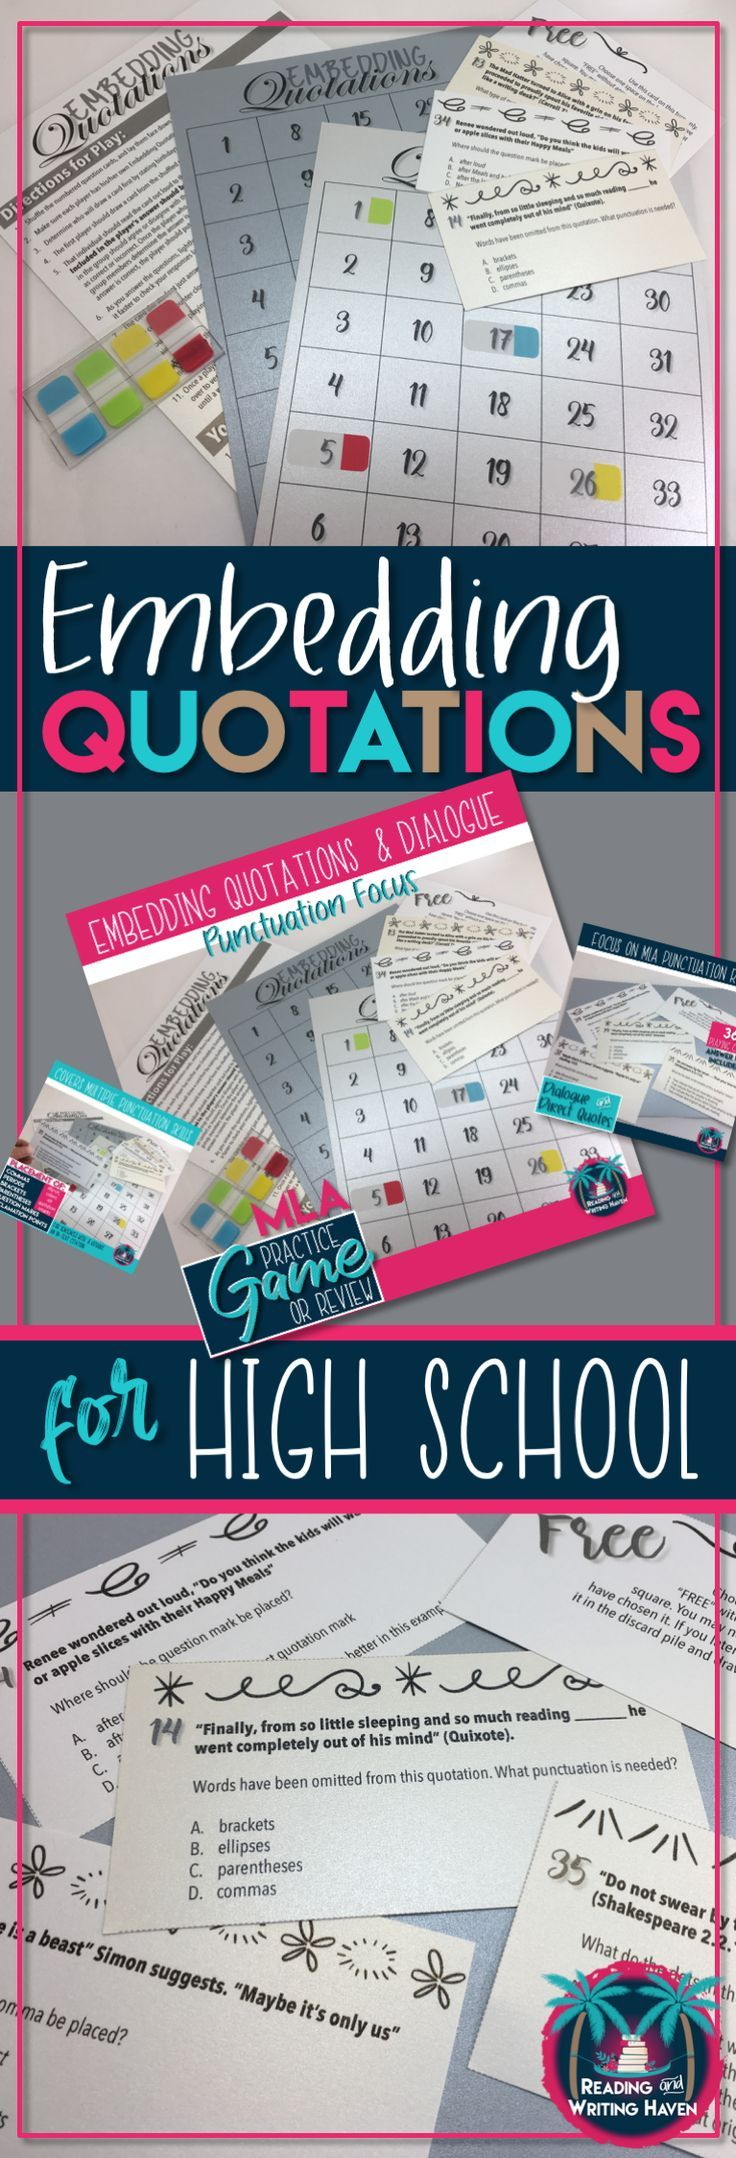 Practice or review activity for the punctuation aspects of embedding quotations and dialogue. Junior high and high school writing game to differentiate learning. #ELAgames #embeddingquotations #highschoolenglish